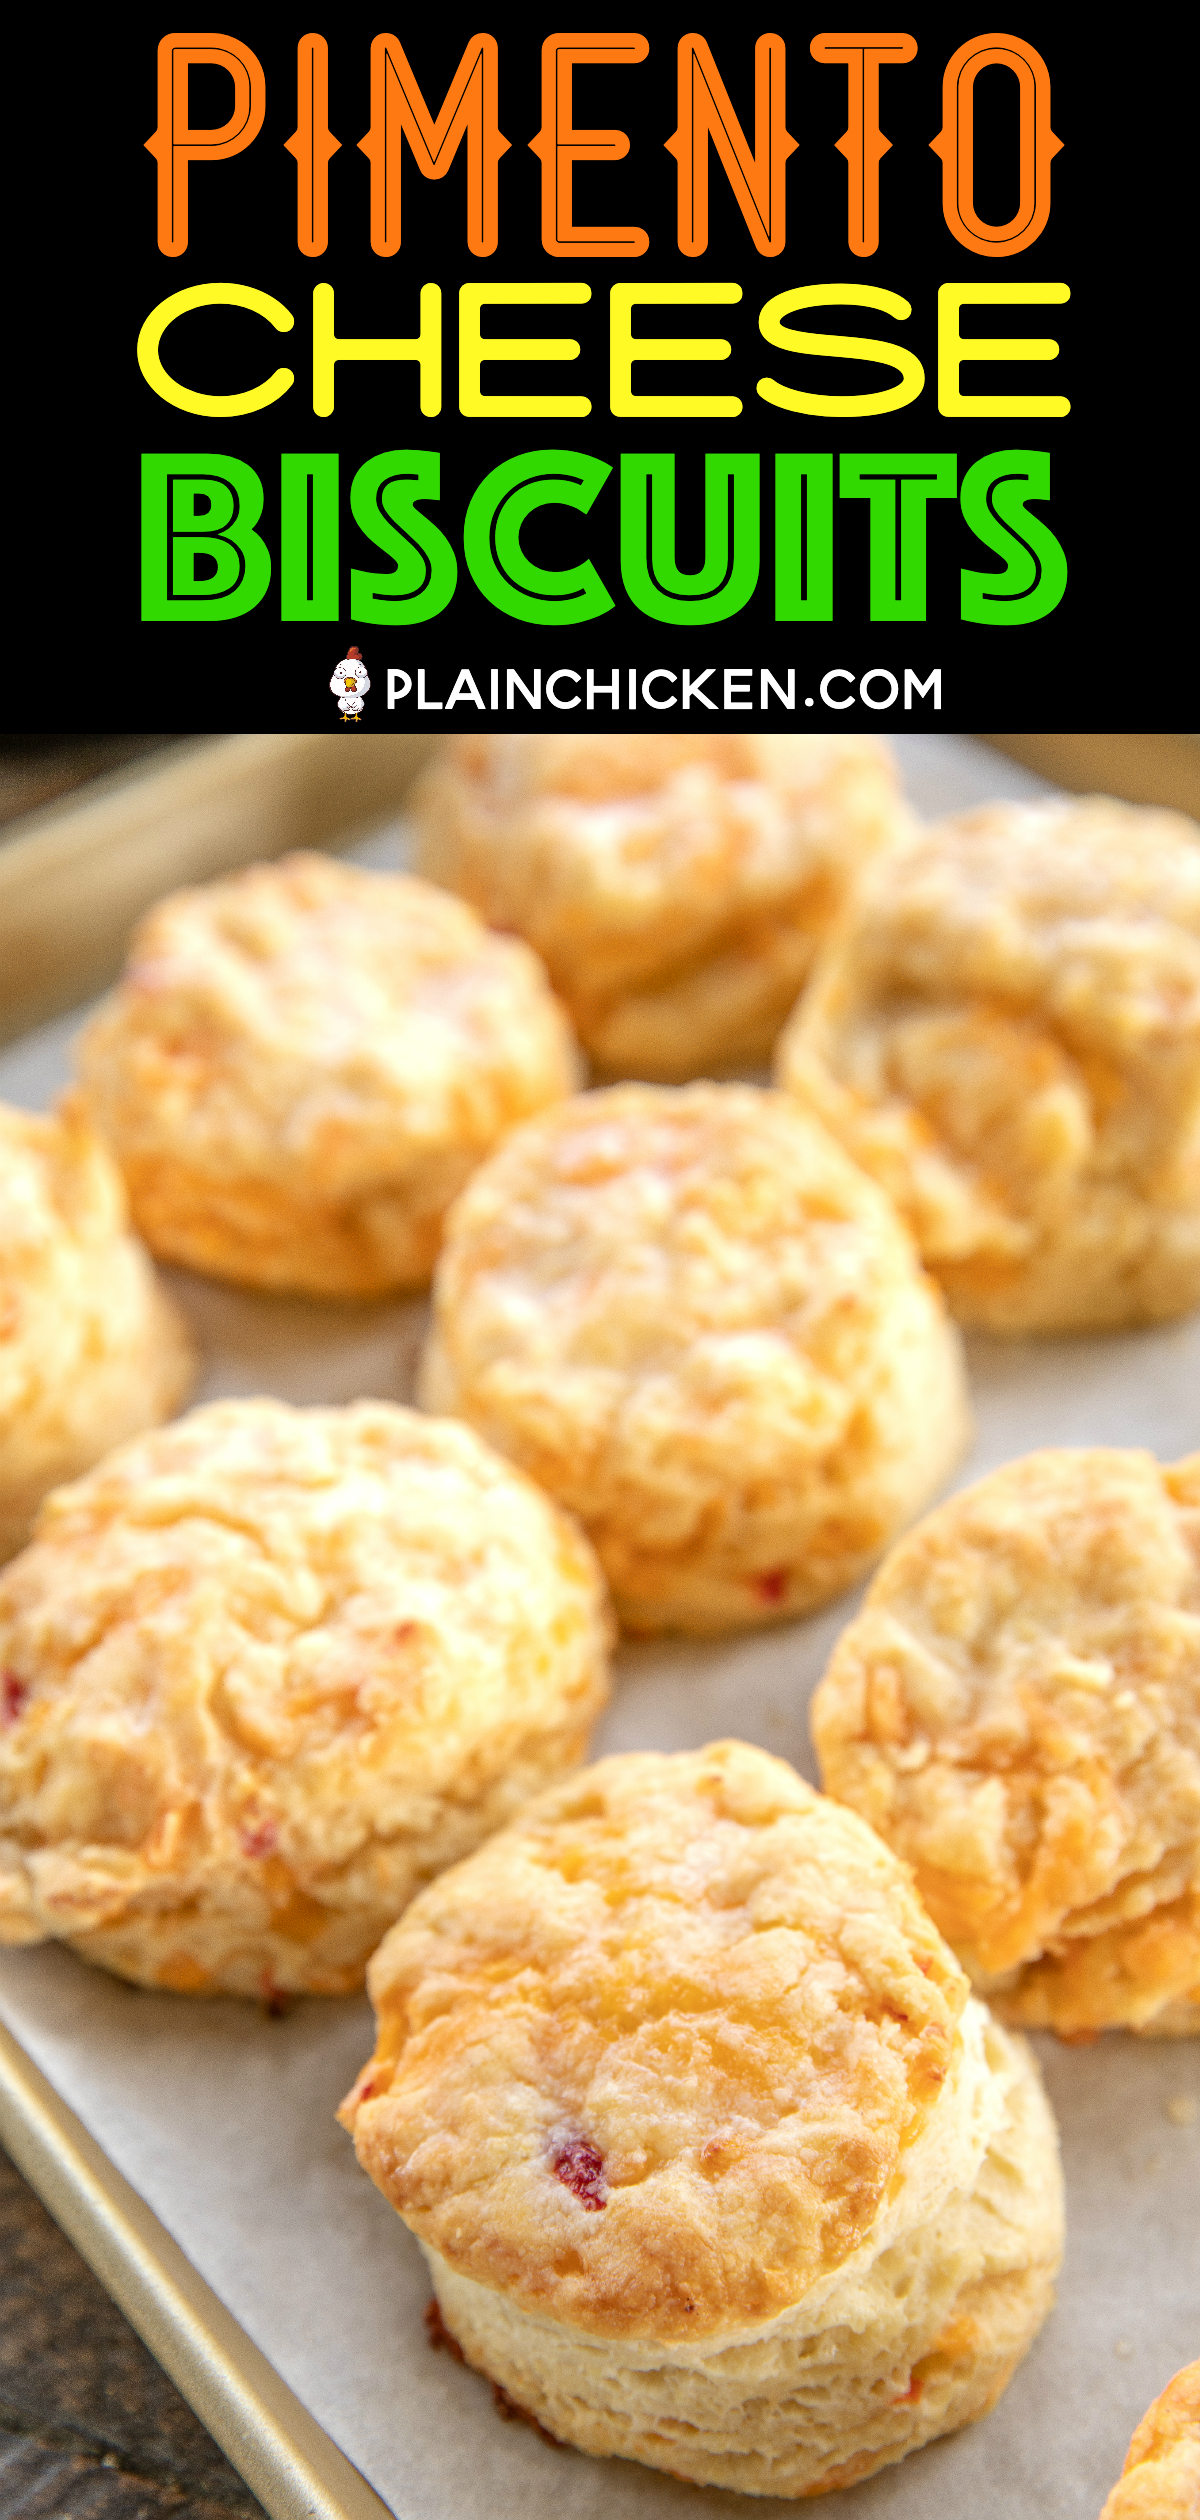 Homemade Pimento Cheese Buttermilk Biscuits Recipe These Are The Best They Are Also Surpr Homemade Pimento Cheese Buttermilk Biscuits Recipe Biscuit Recipe